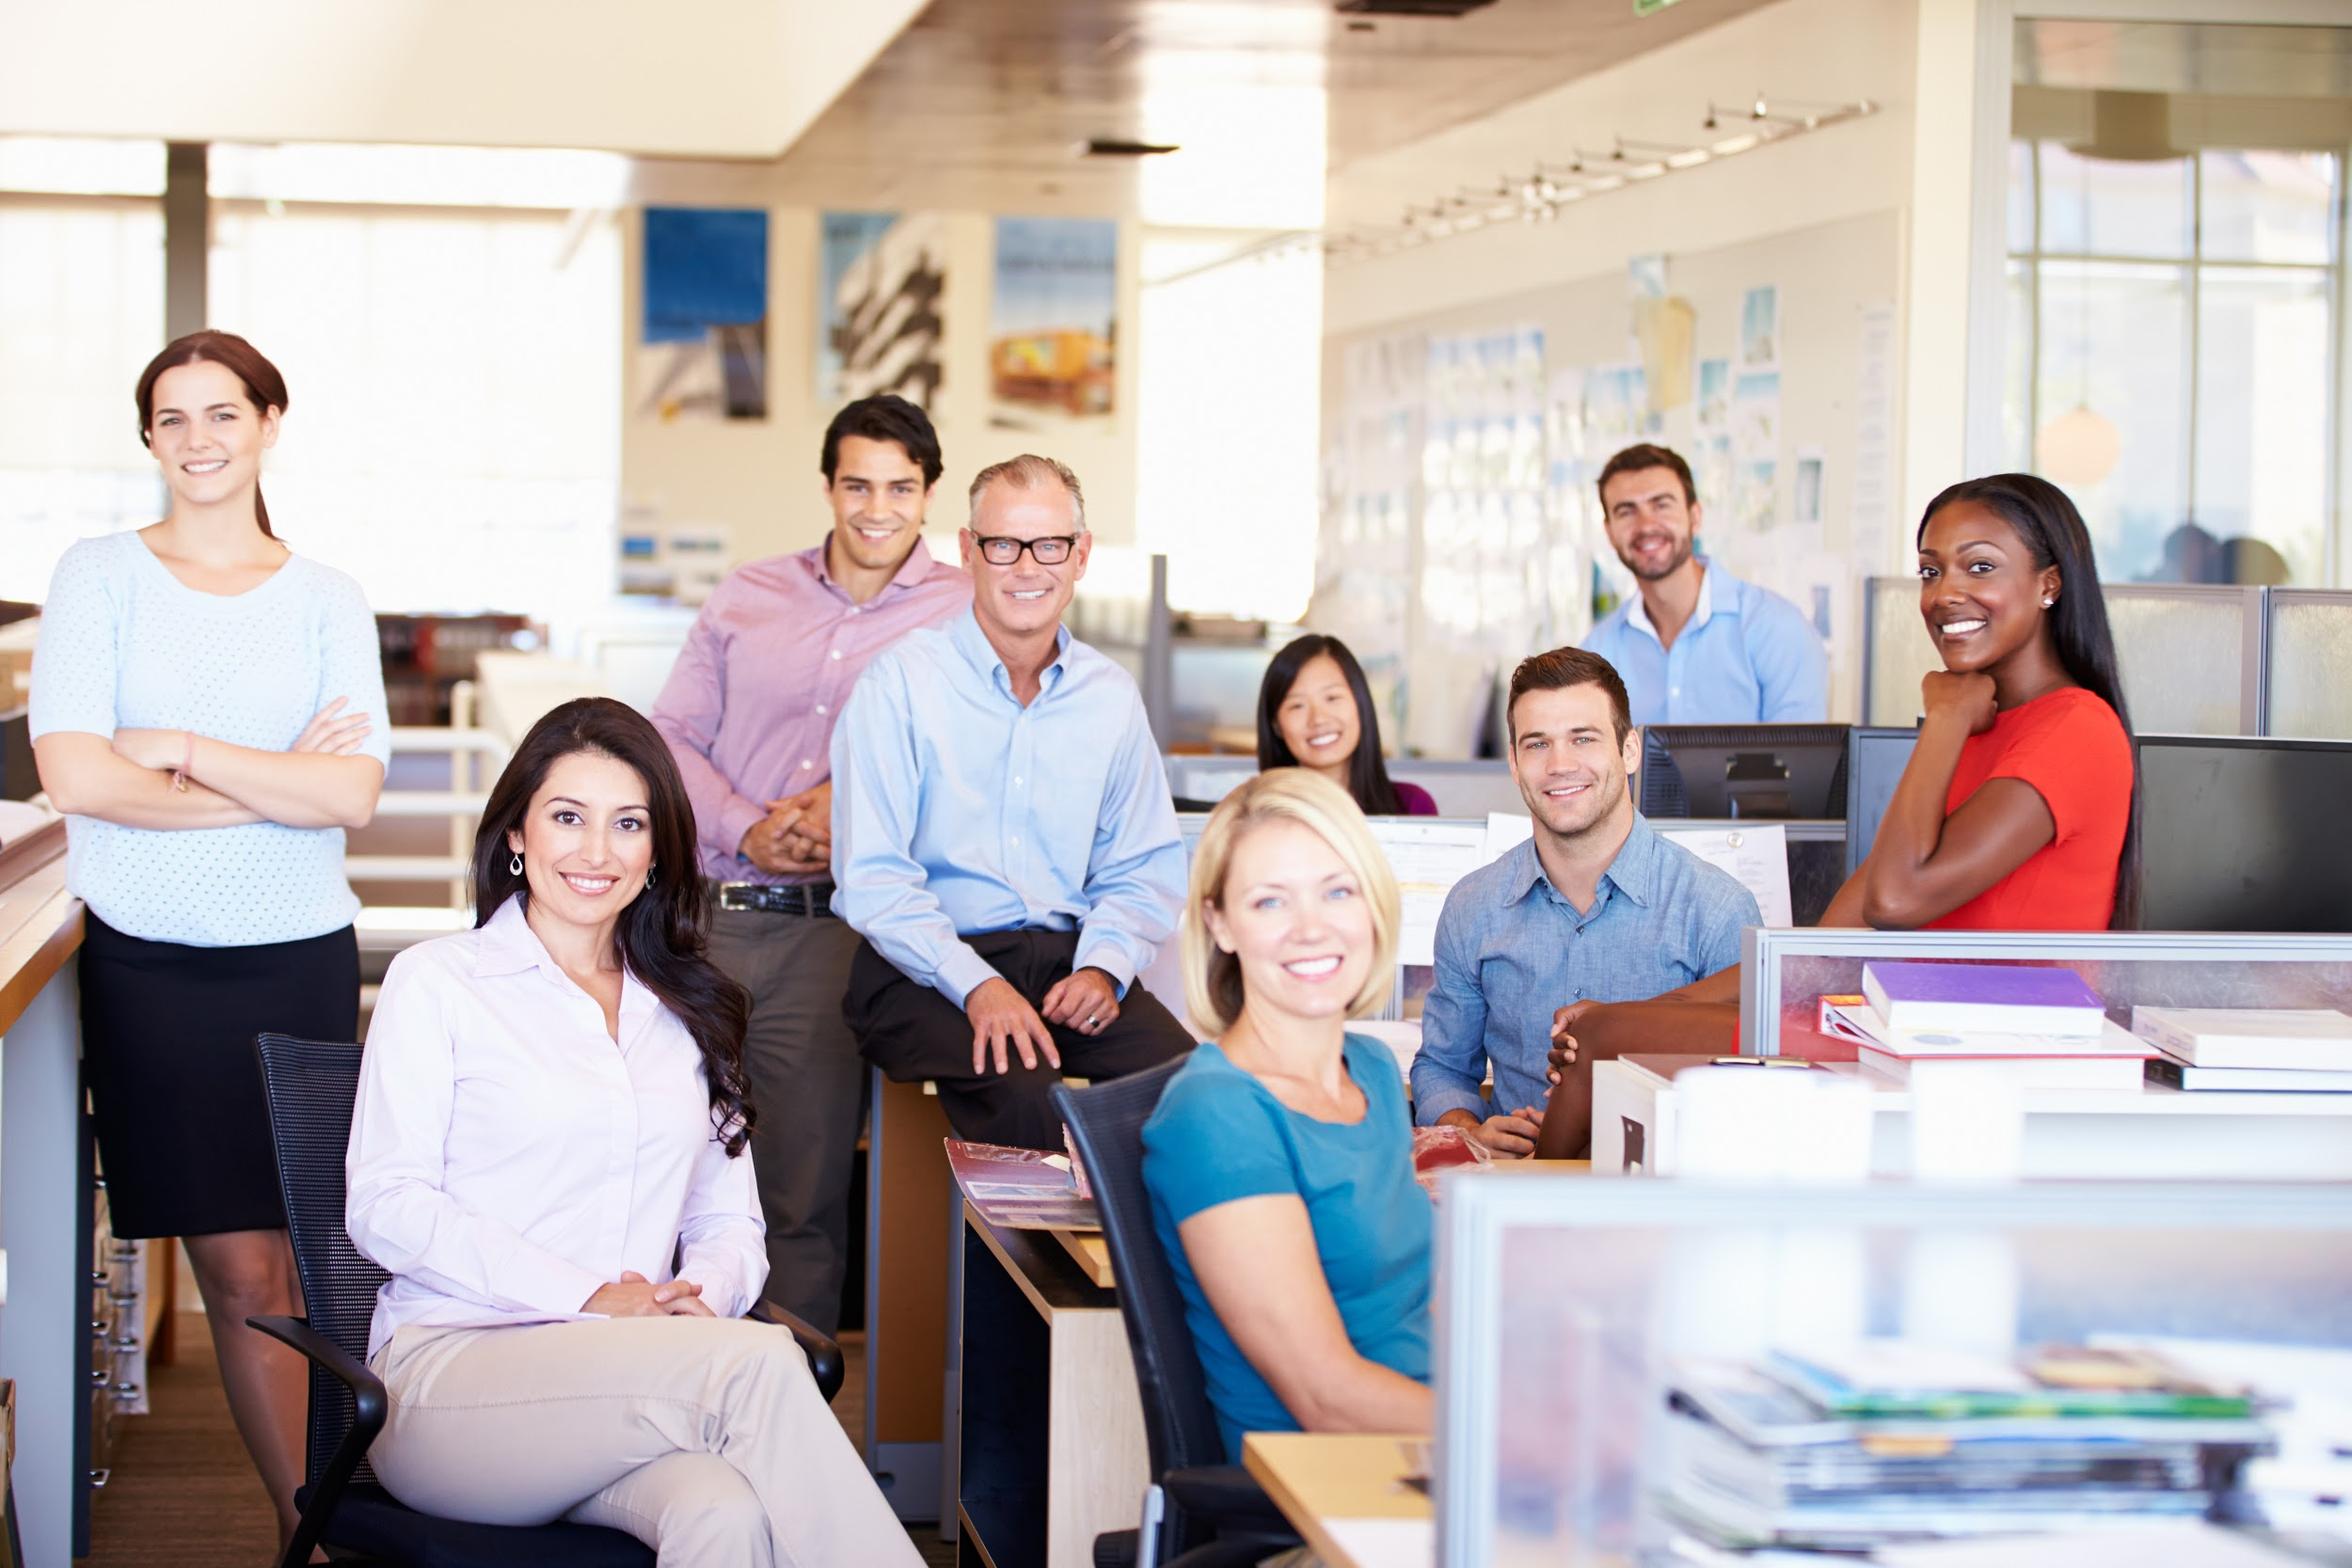 smiling professional men and women in the office